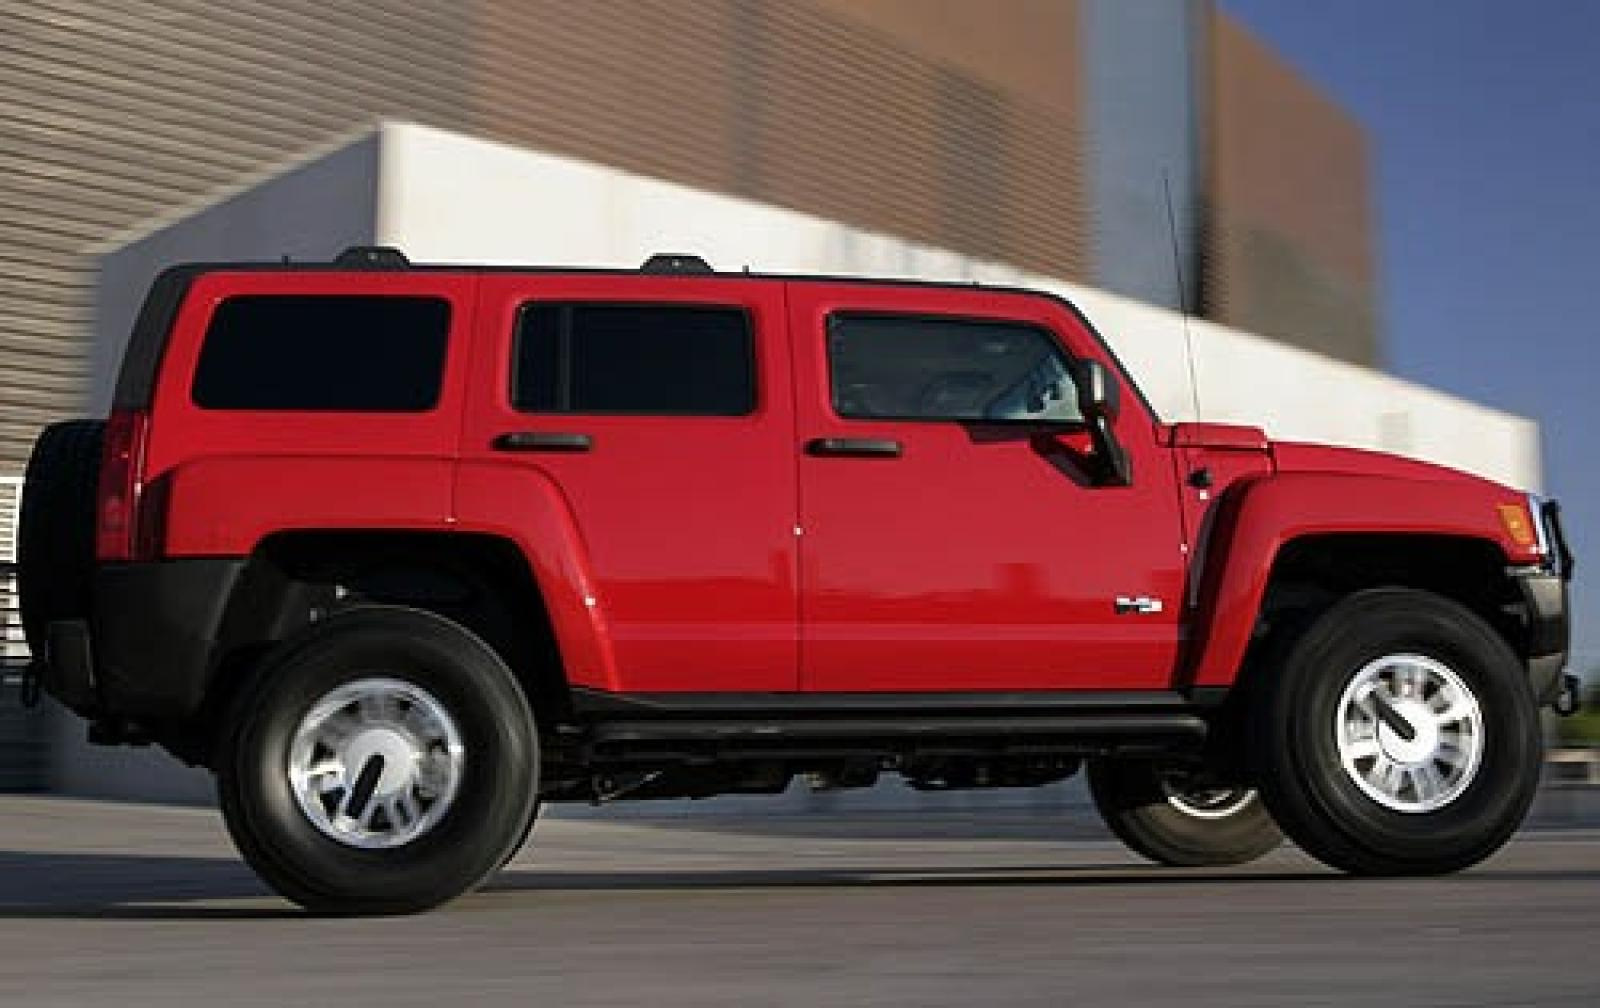 Picture of 2007 hummer h3 4 dr base exterior - Hummer Gallery